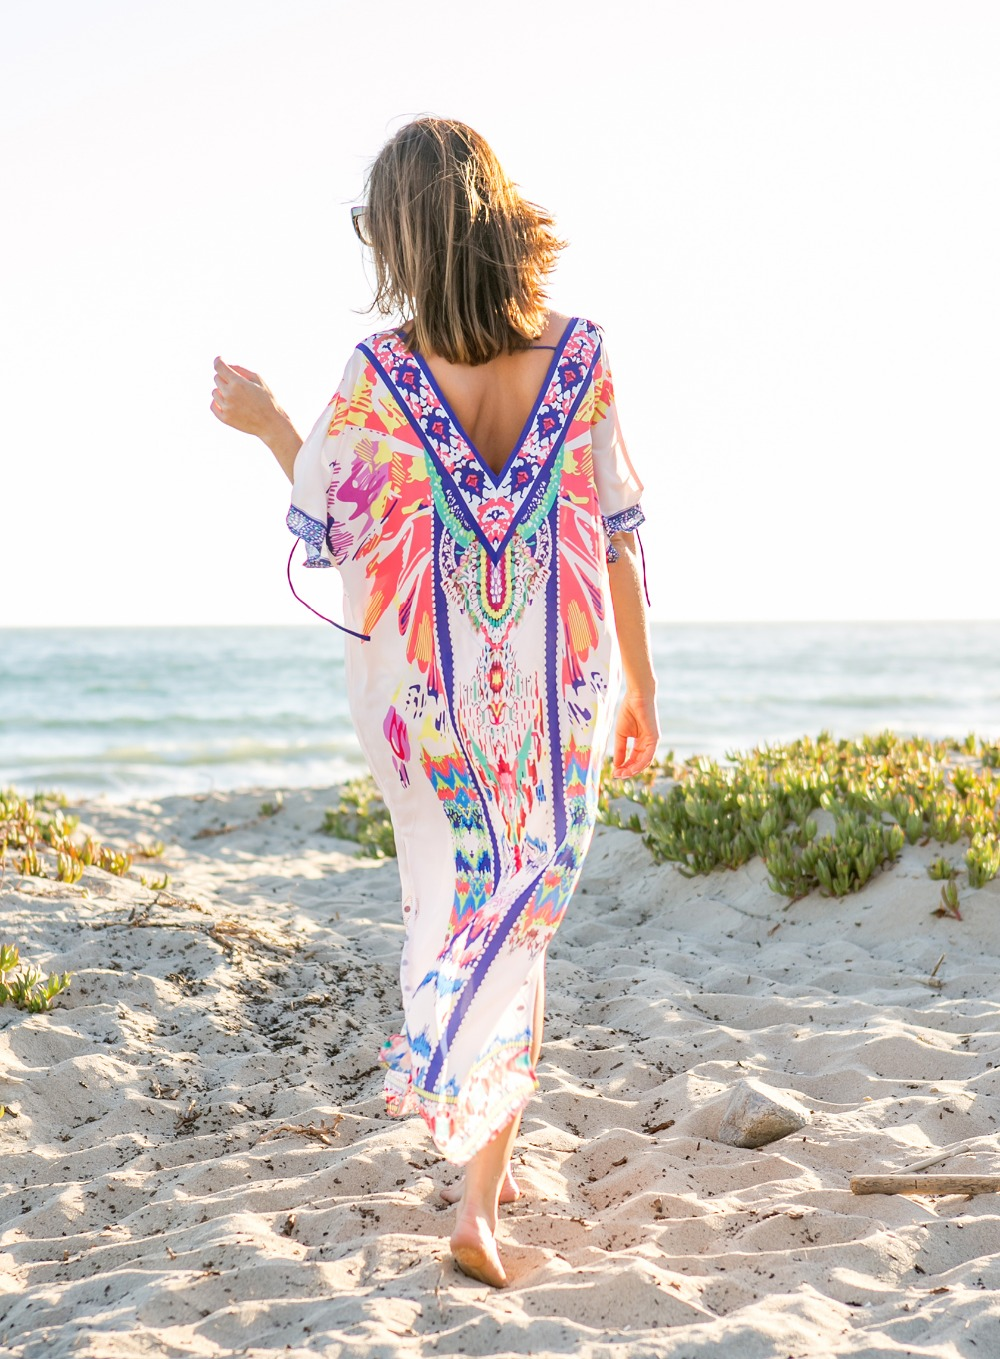 Sydne-Style-shows-what-to-wear-to-the-beach-in-the-caftan-trend